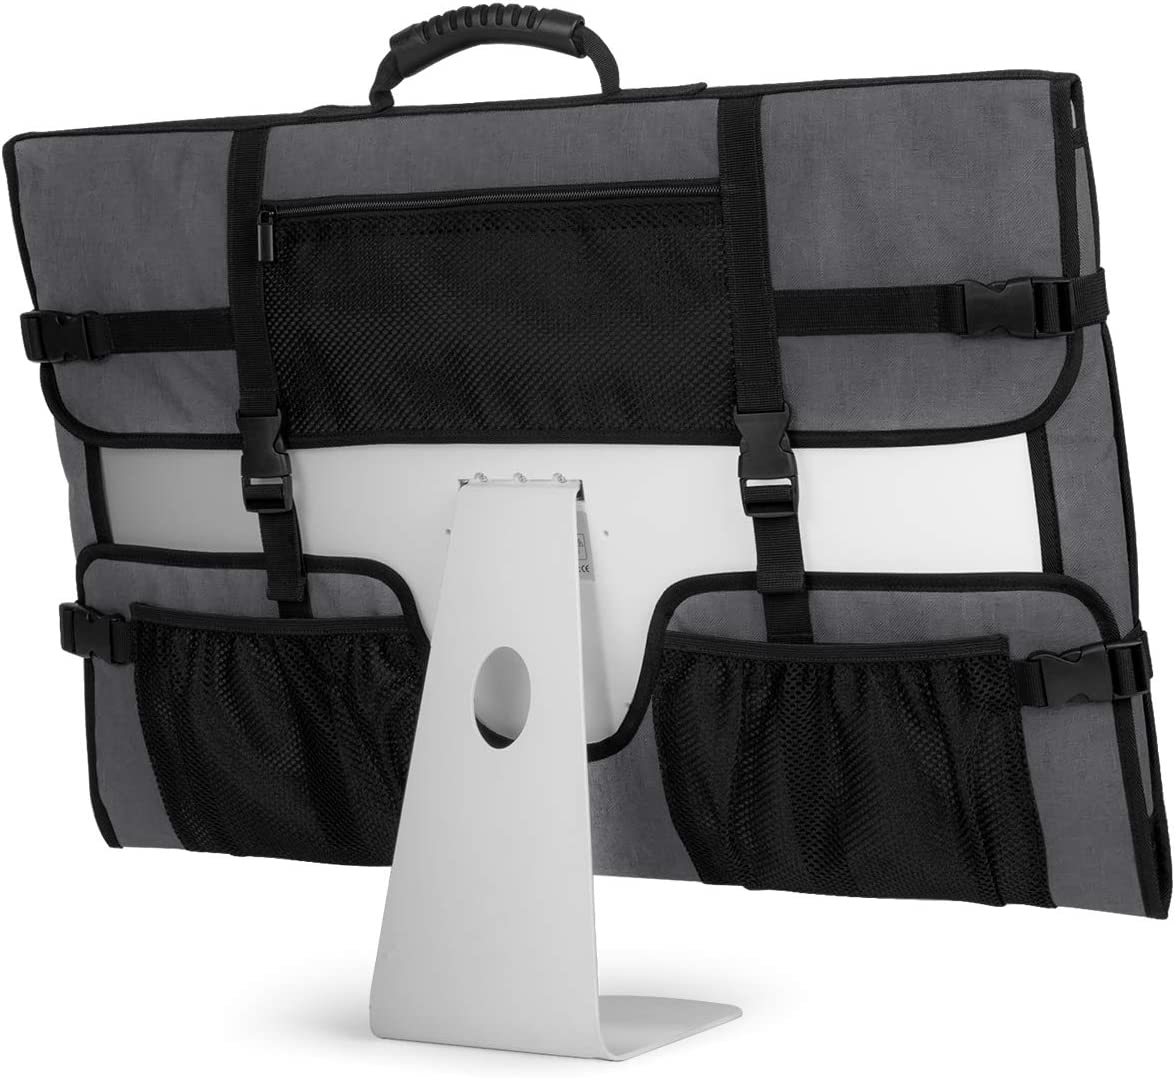 """CURMIO Travel Carrying Case for Apple 21.5"""" iMac Desktop Computer, Protective Storage Bag Monitor Dust Cover with Rubber Handle for 21.5"""" iMac Screen and Accessories, Gray, Patent Design."""